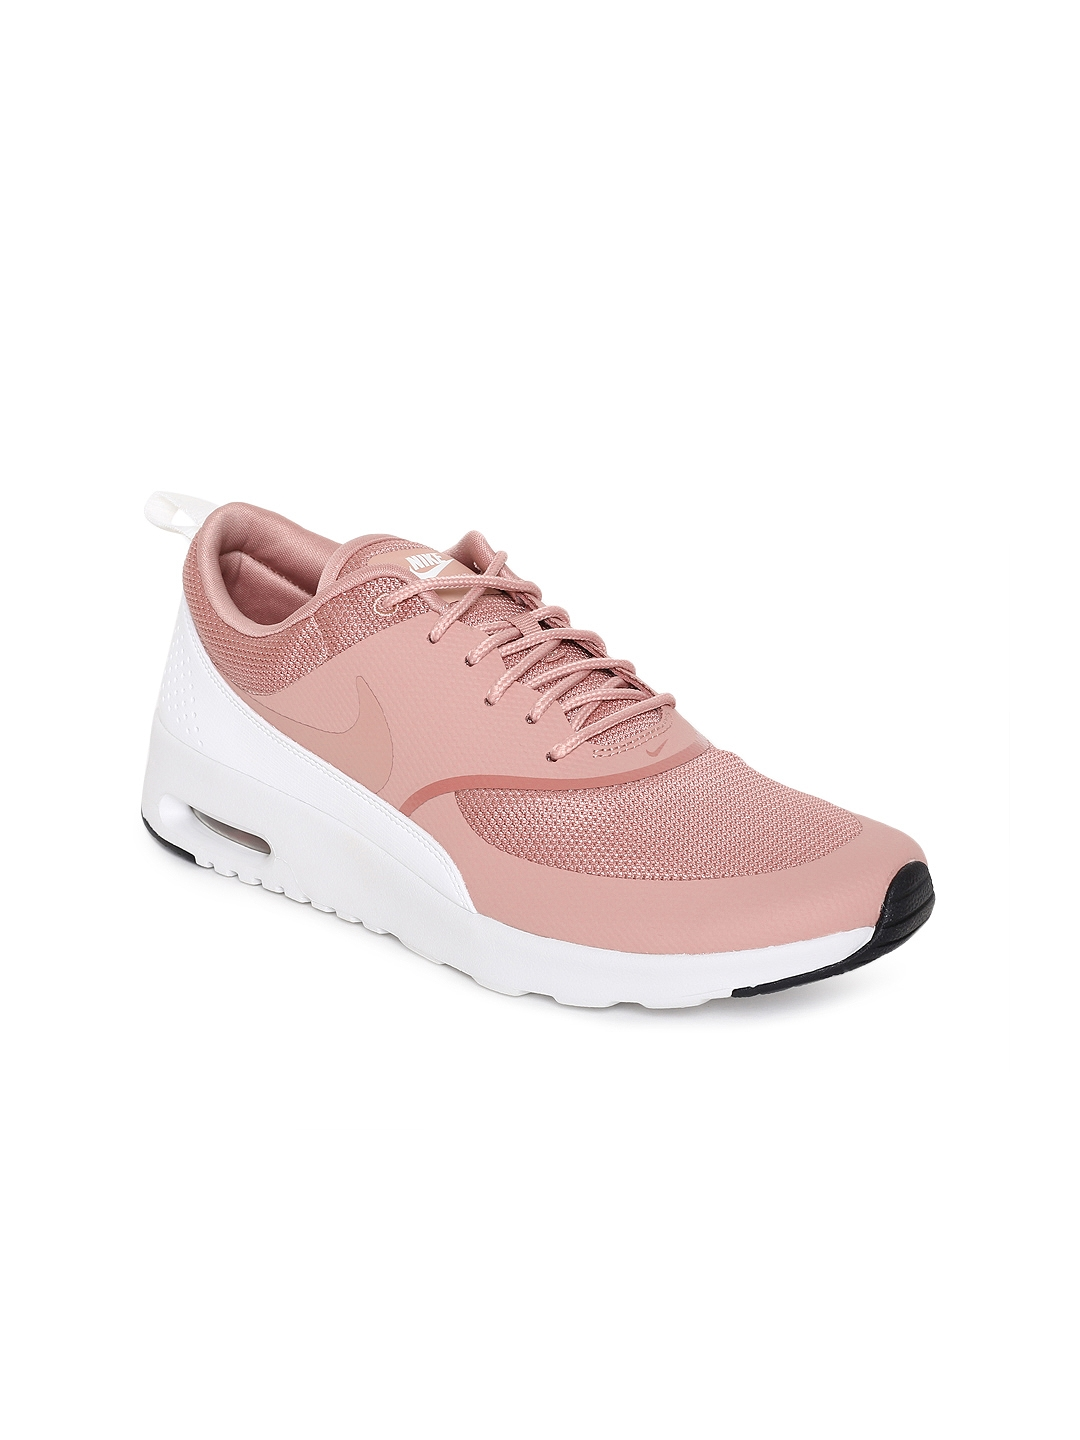 watch 88b85 c7ea6 Nike Women Dusty Pink Air Max Thea Running Shoes